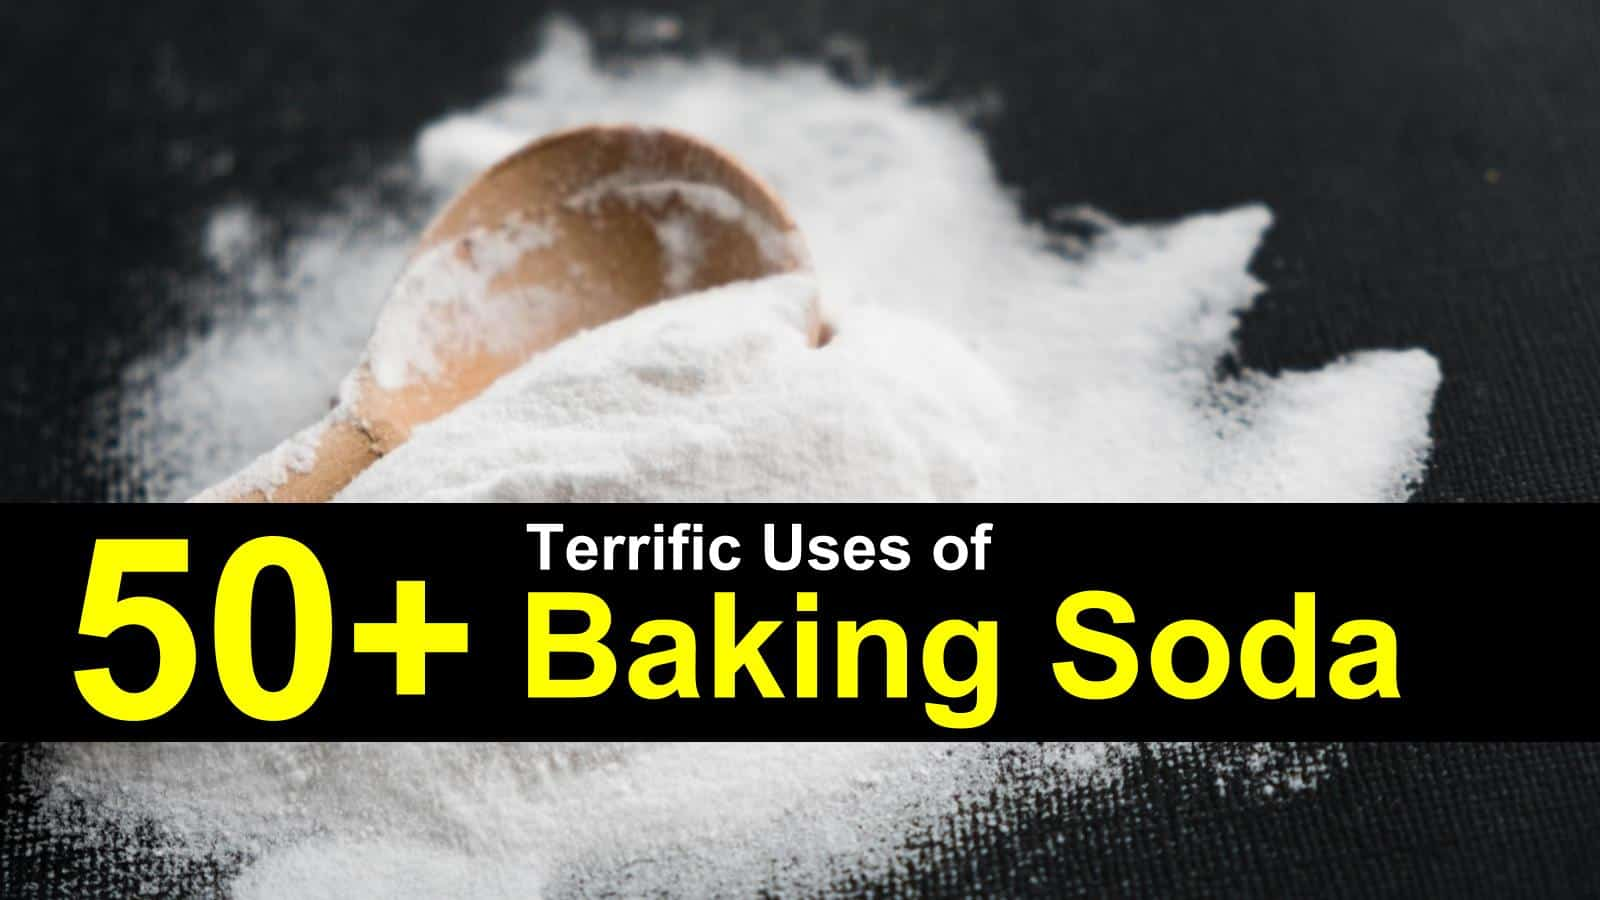 50+ Terrific Uses of Baking Soda (2019 Update)